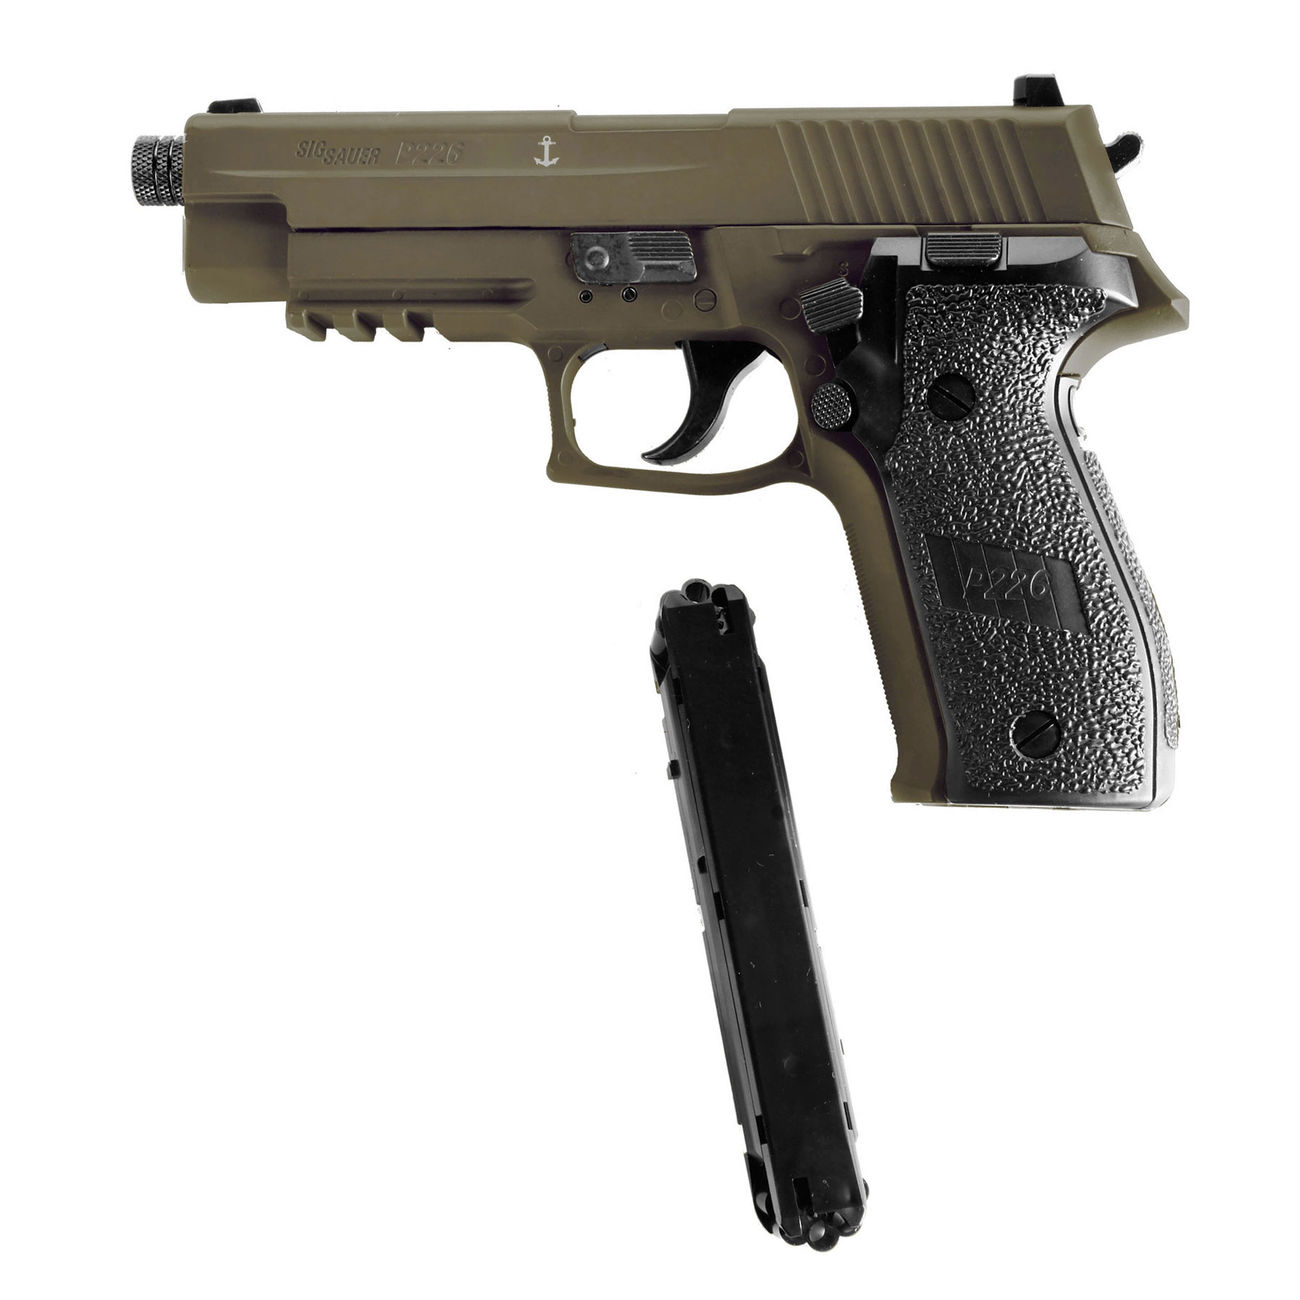 Sig Sauer P226 CO2 Luftpistole Kal. 4,5mm Diabolo BB Blow Back dark earth 4